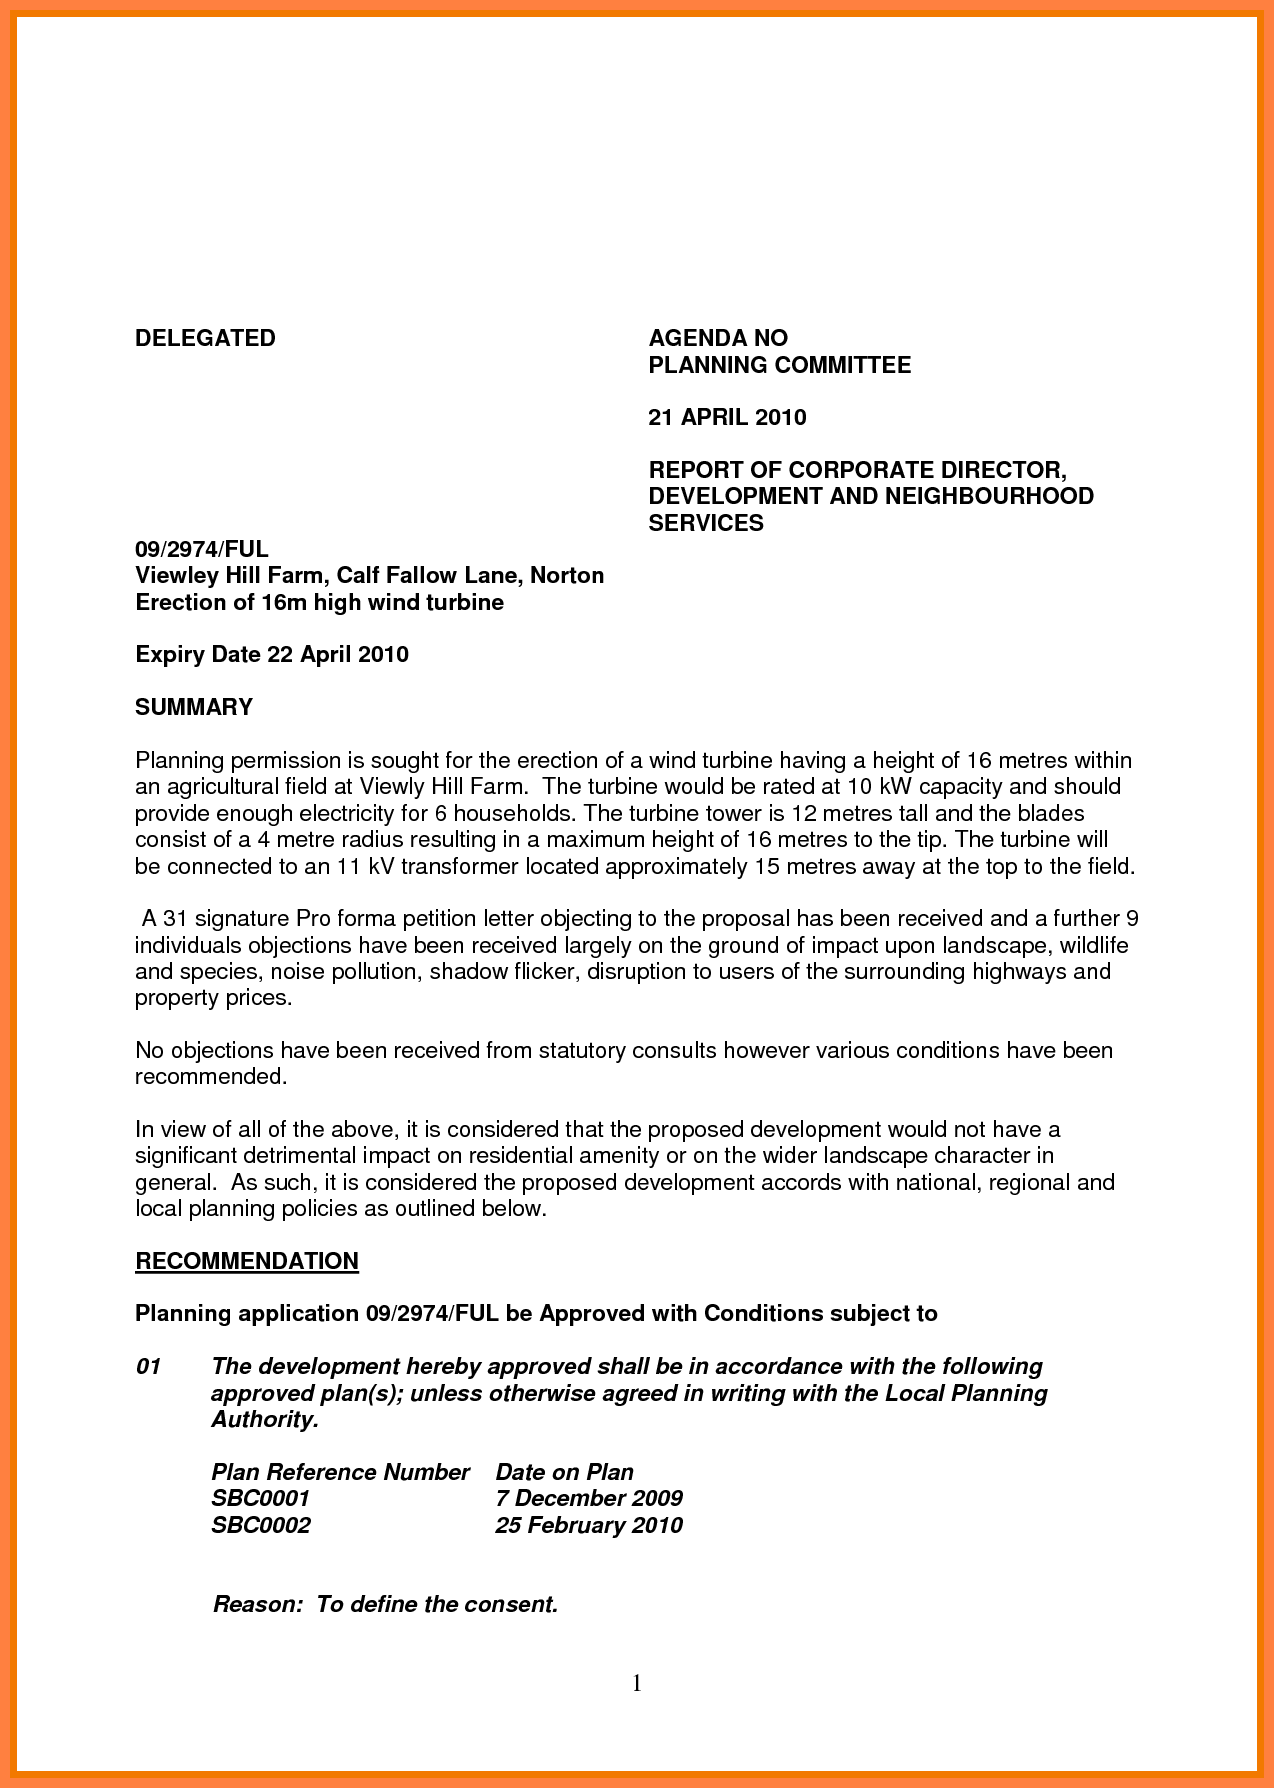 ba swift resume sample